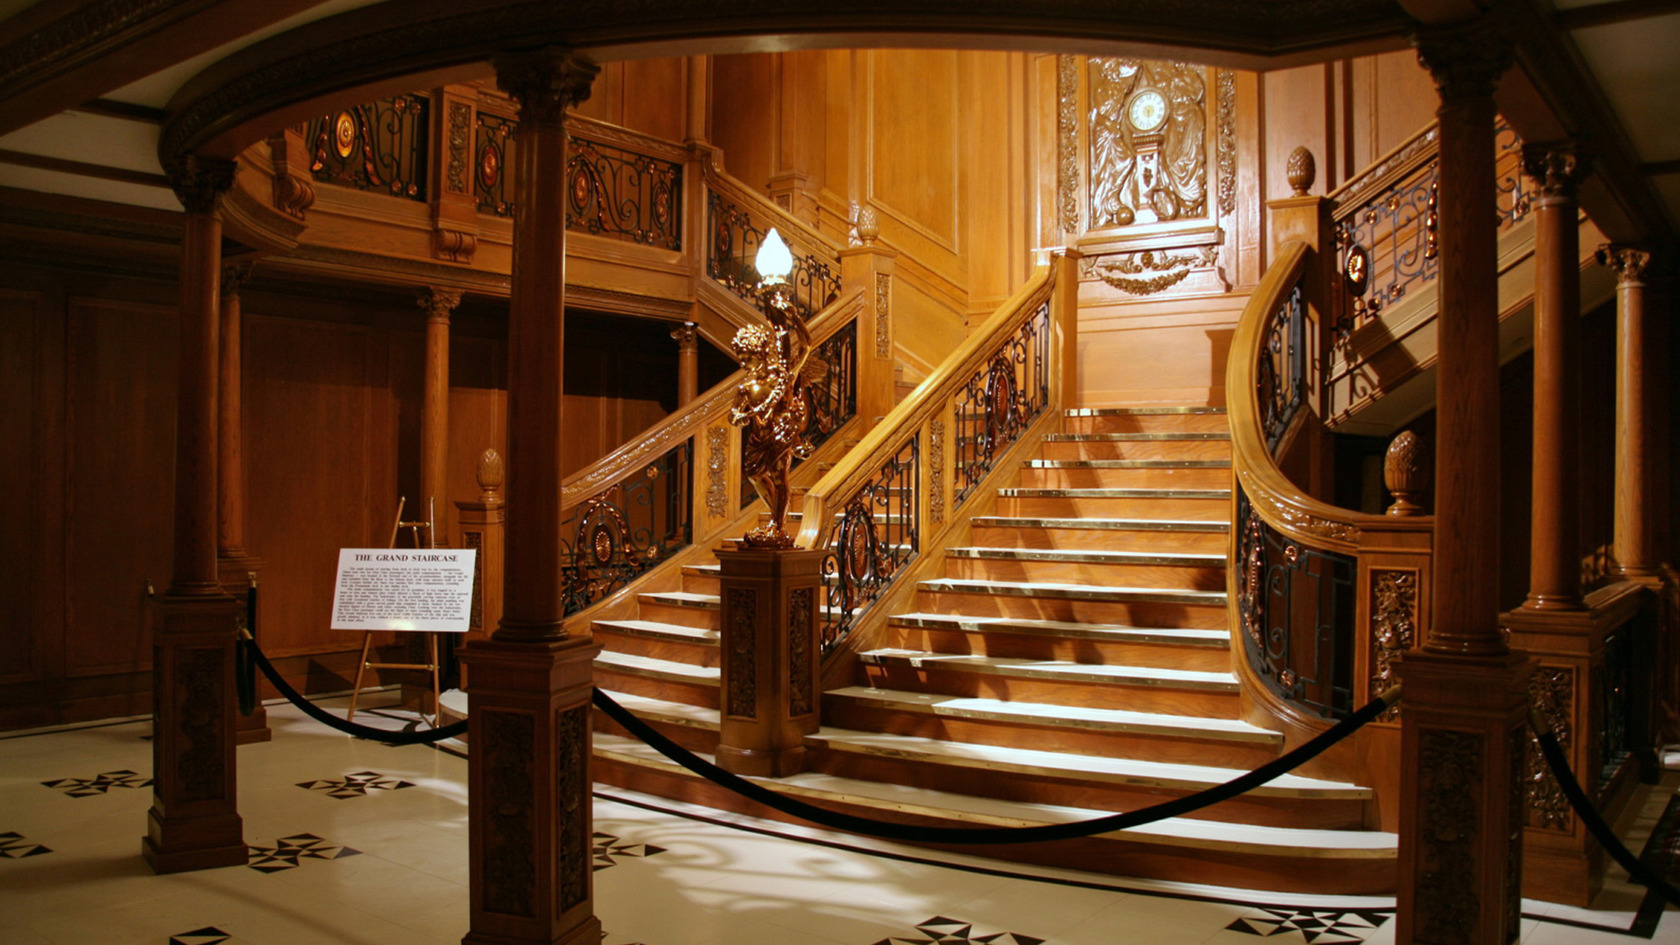 The Gallery For Gt Rms Titanic Underwater Grand Staircase